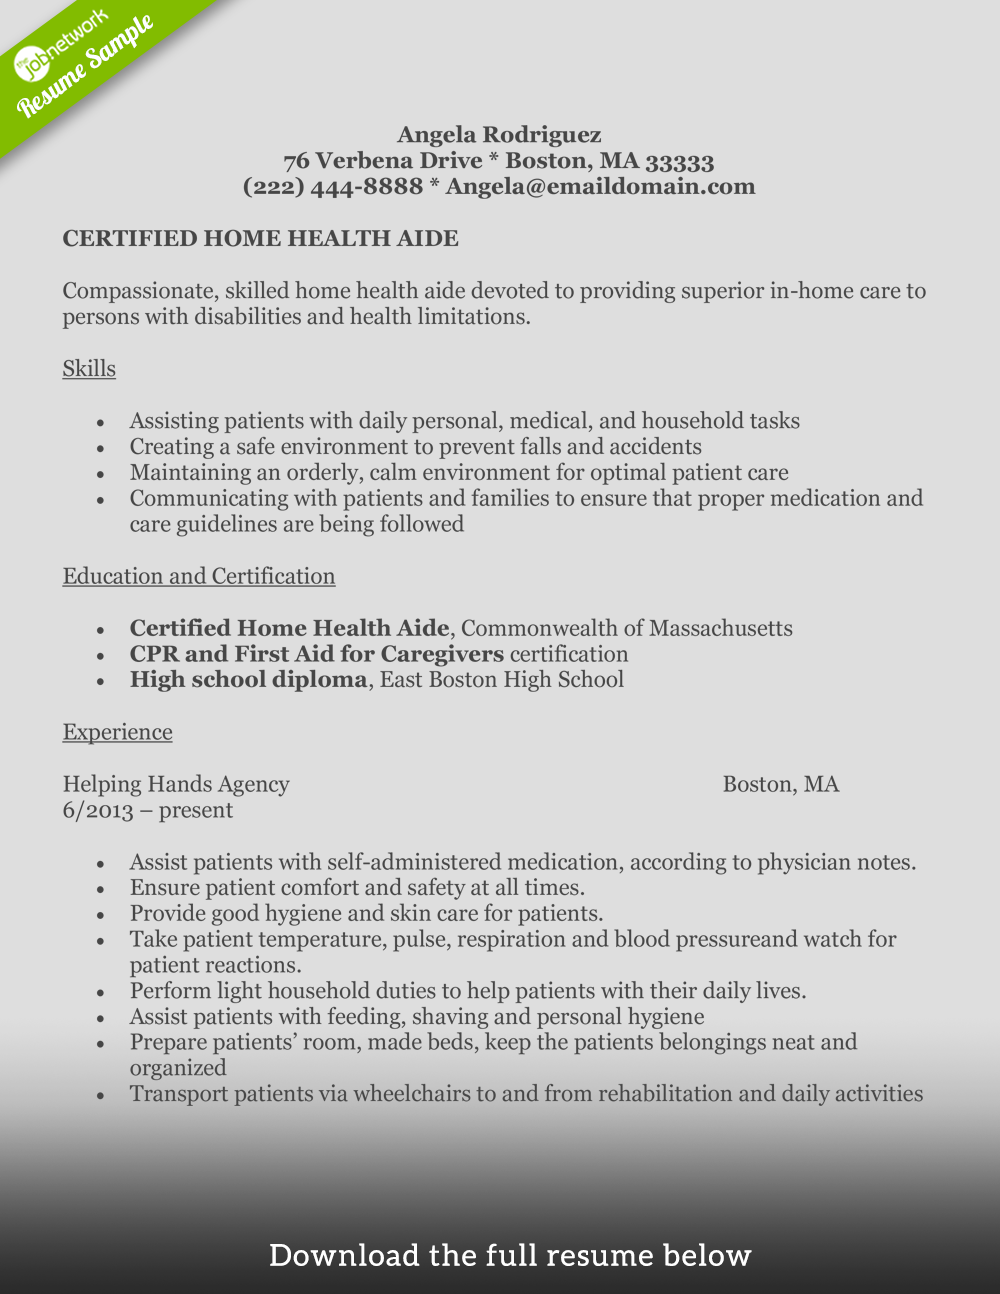 How to Write a Perfect Home Health Aide Resume (Examples